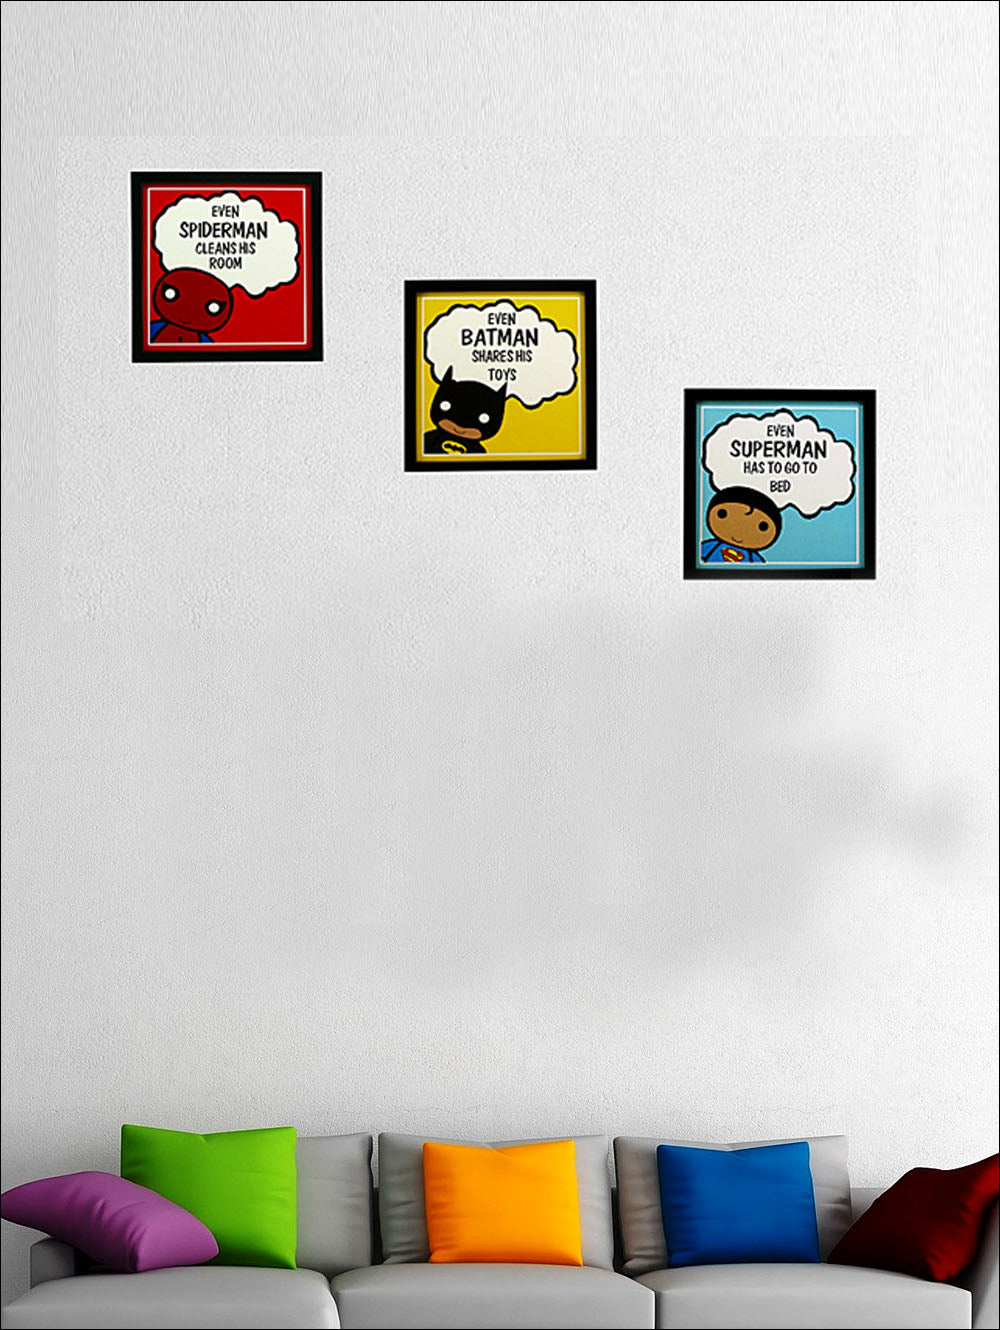 Indianara 3 Piece Set Of Framed Wall Hanging Kids Room Decor Spiderman Batman Superman Art Prints Without Glass